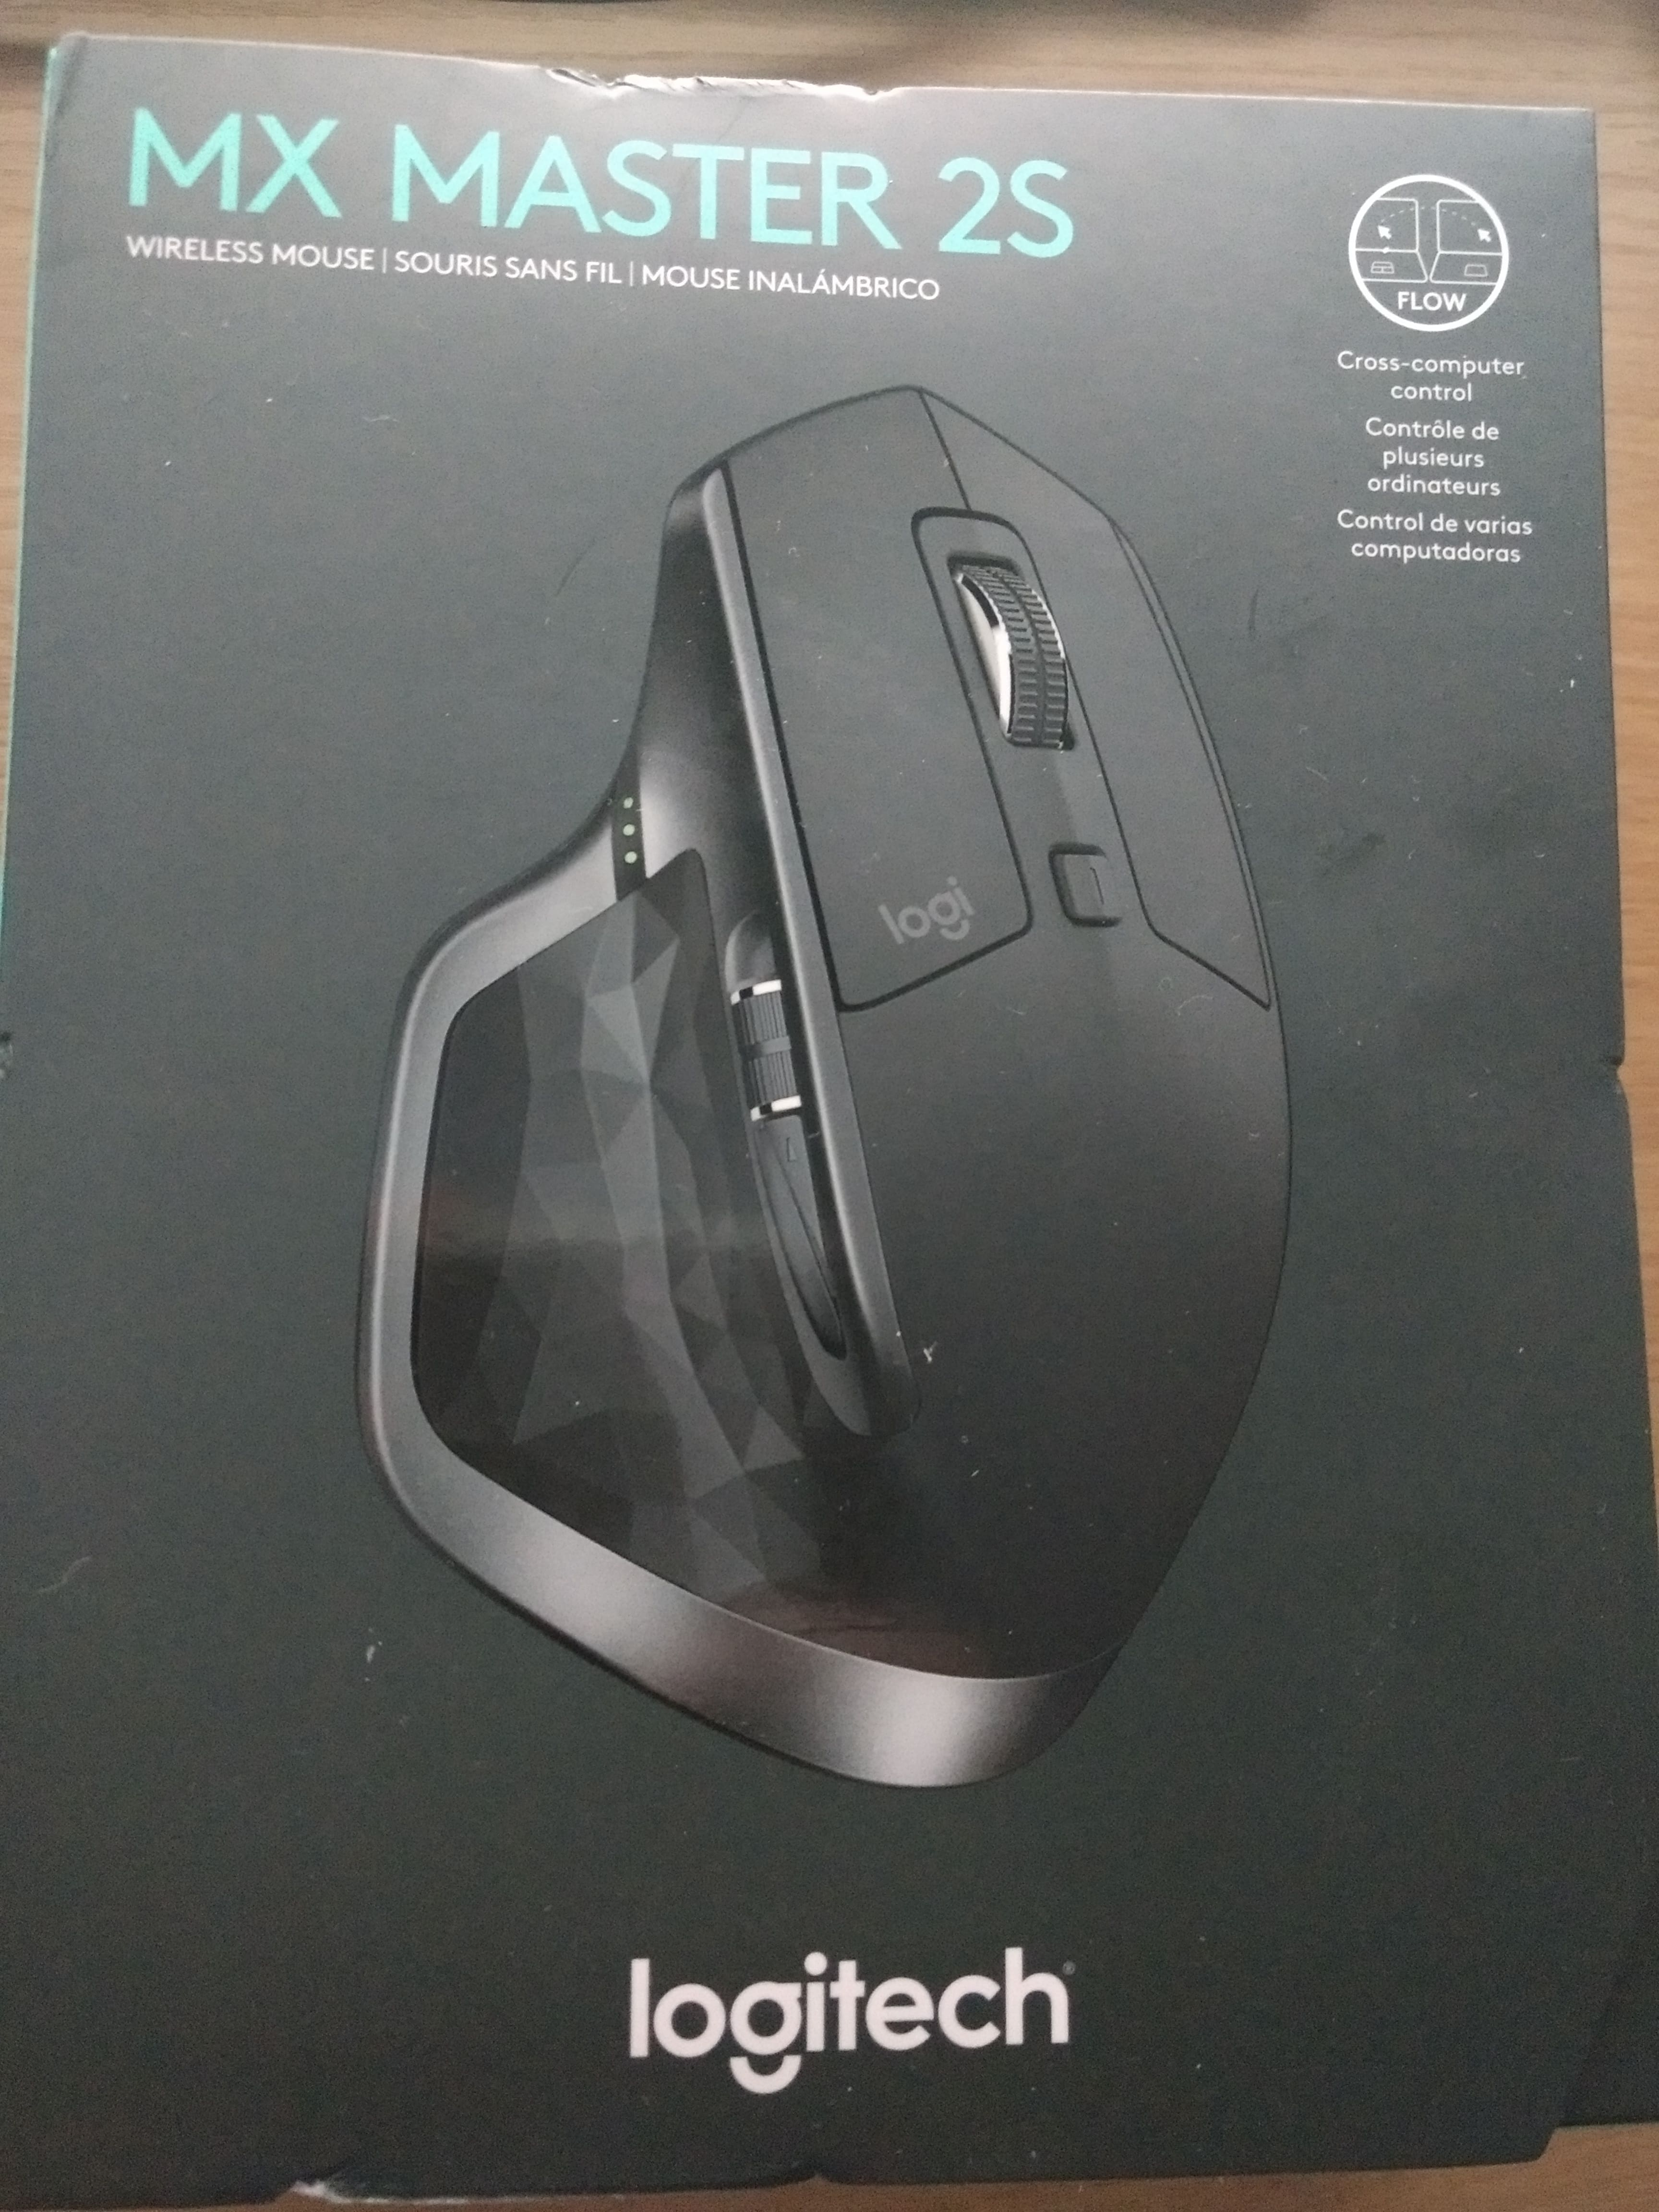 YMMV Logitech MX Master 2s Wireless Mouse 49.99 + tax at OD